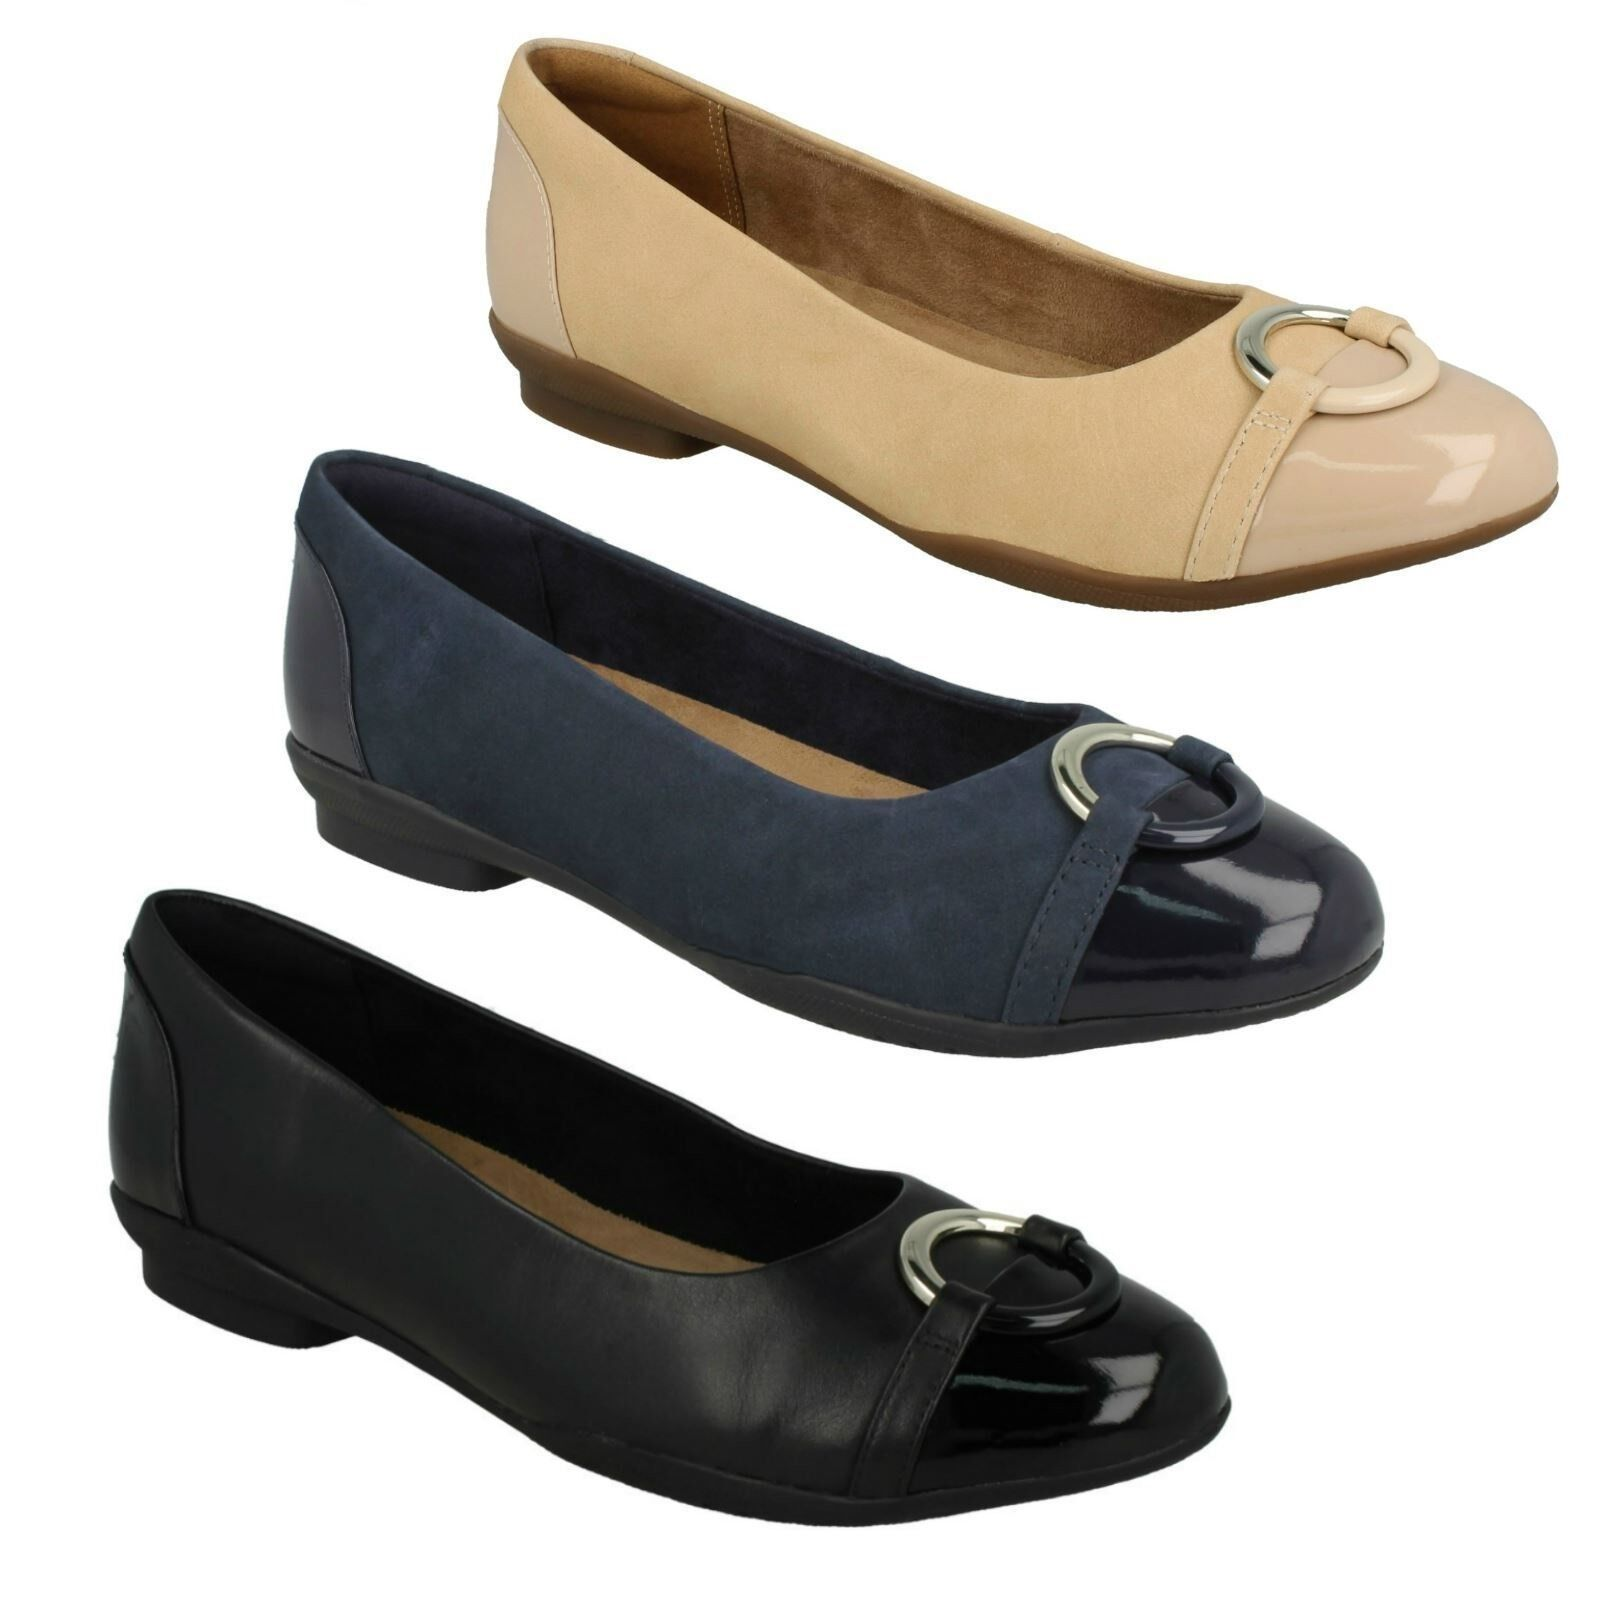 LADIES CLARKS UNSTRUCTURED LEATHER NEENAH SLIP ON FLAT BALLERINA SHOES NEENAH LEATHER VINE 0dbd81